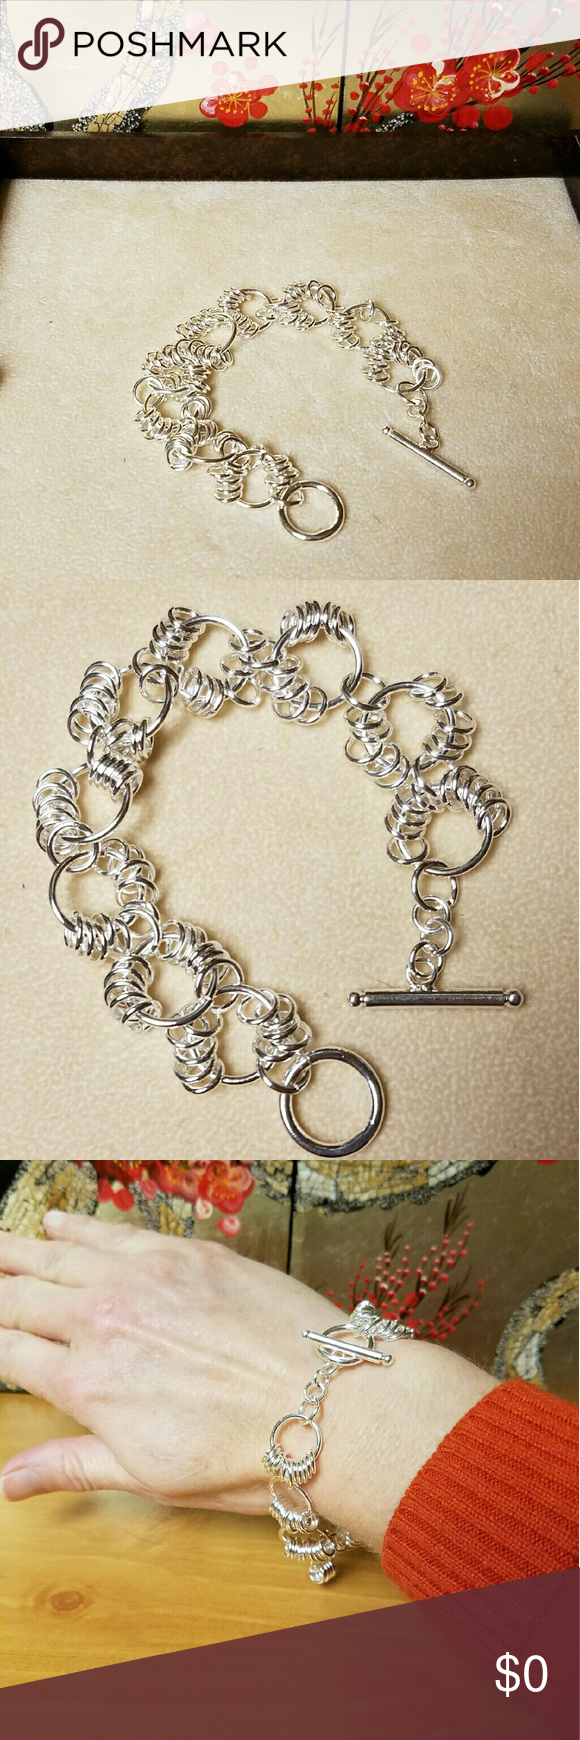 """FUN  & Unique Silver-toned Circle link Bracelet Silver-toned Circle link Bracelet w/ Toggle Clasp. There is a small amount of weight to it. Very fun & unique. Has a nice sound to it as all the small rings slide around.  Length: 8"""" Would be a great addition to a bundle. Jewelry Bracelets"""